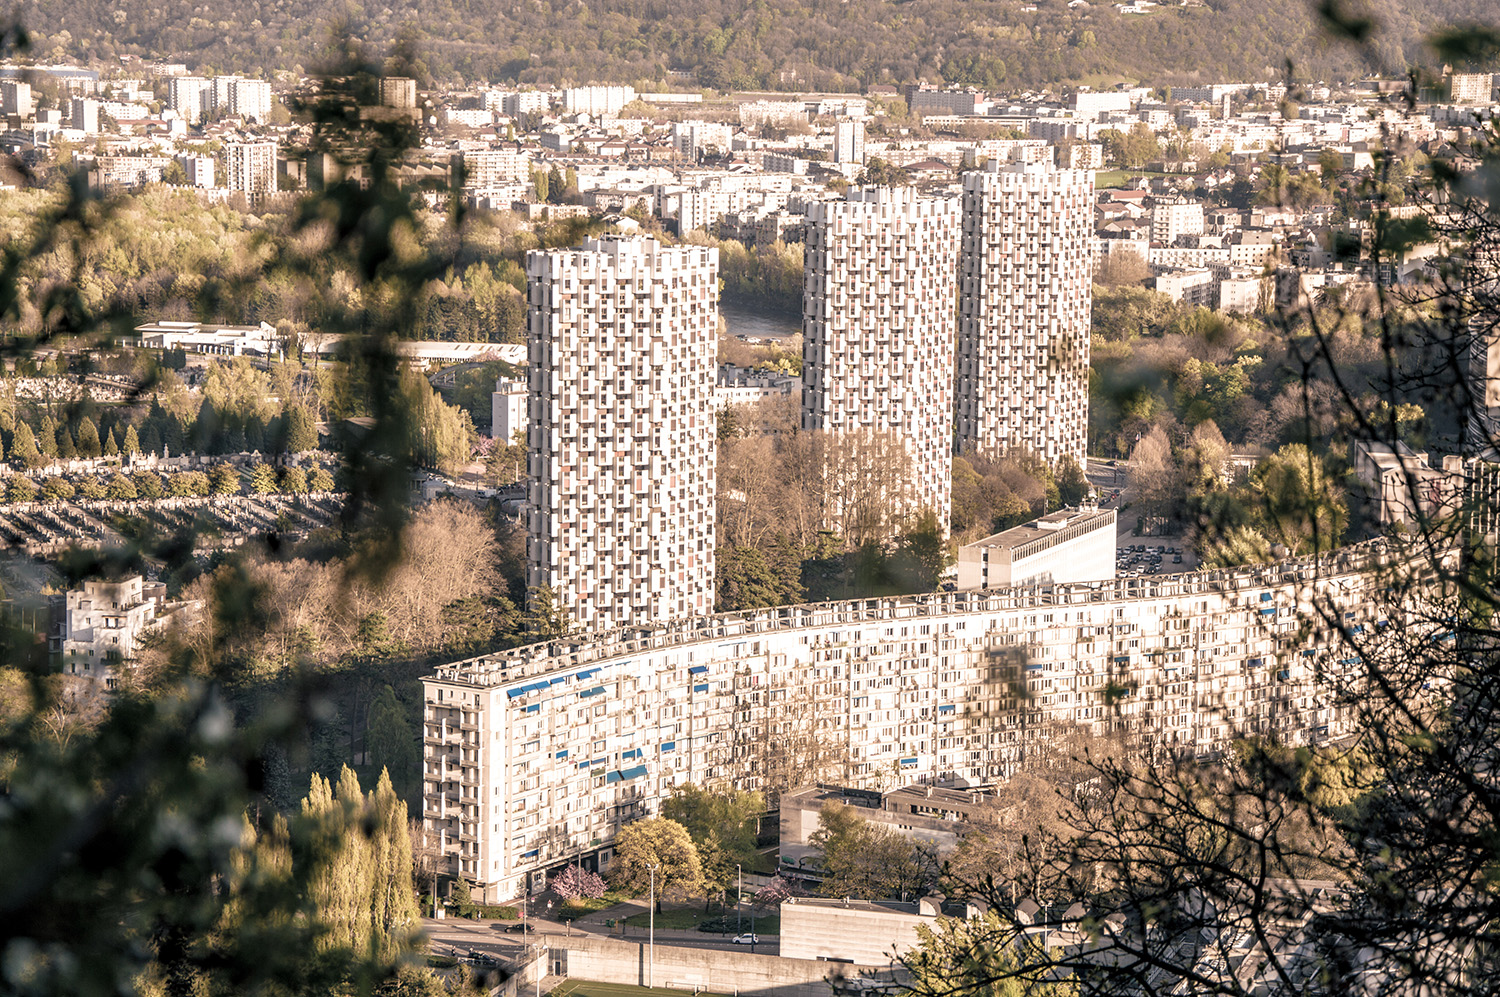 printemps à Grenoble Bastille